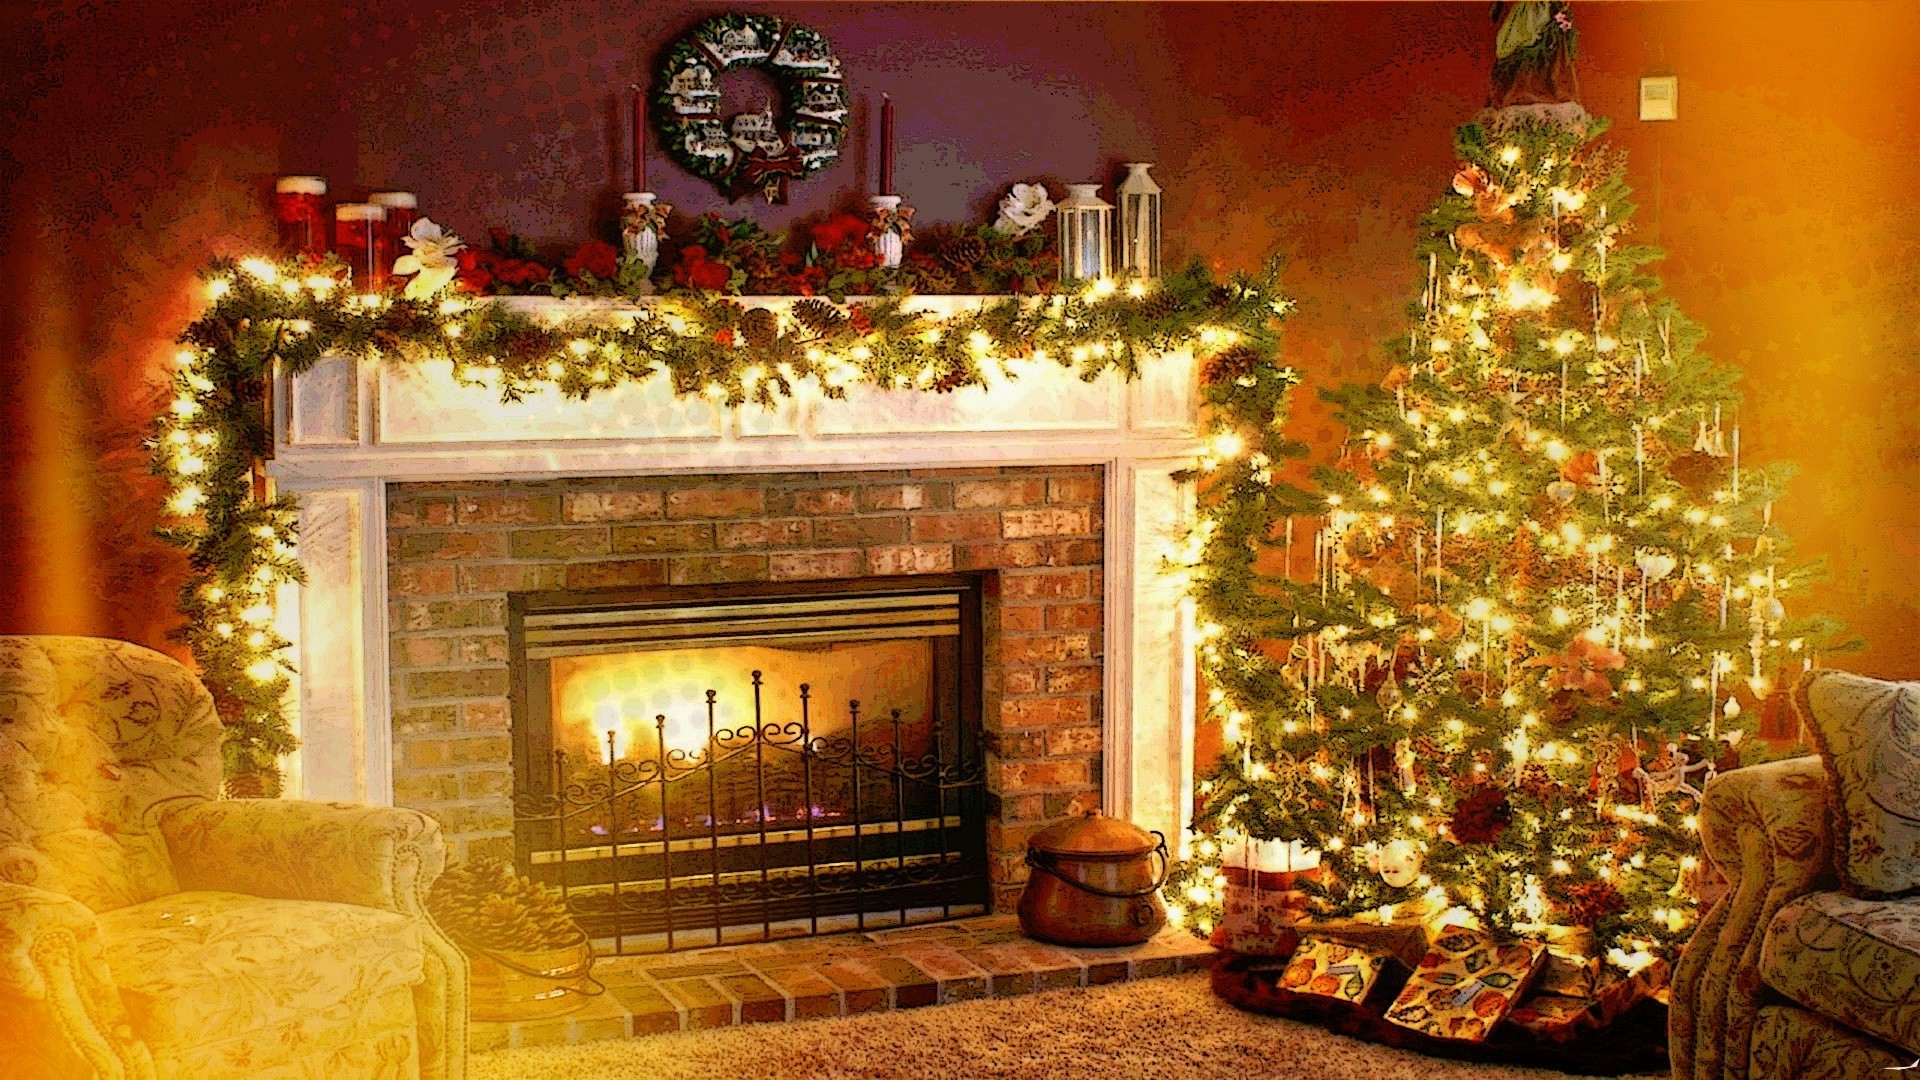 69 Christmas Fireplace Wallpapers on WallpaperPlay 1920x1080